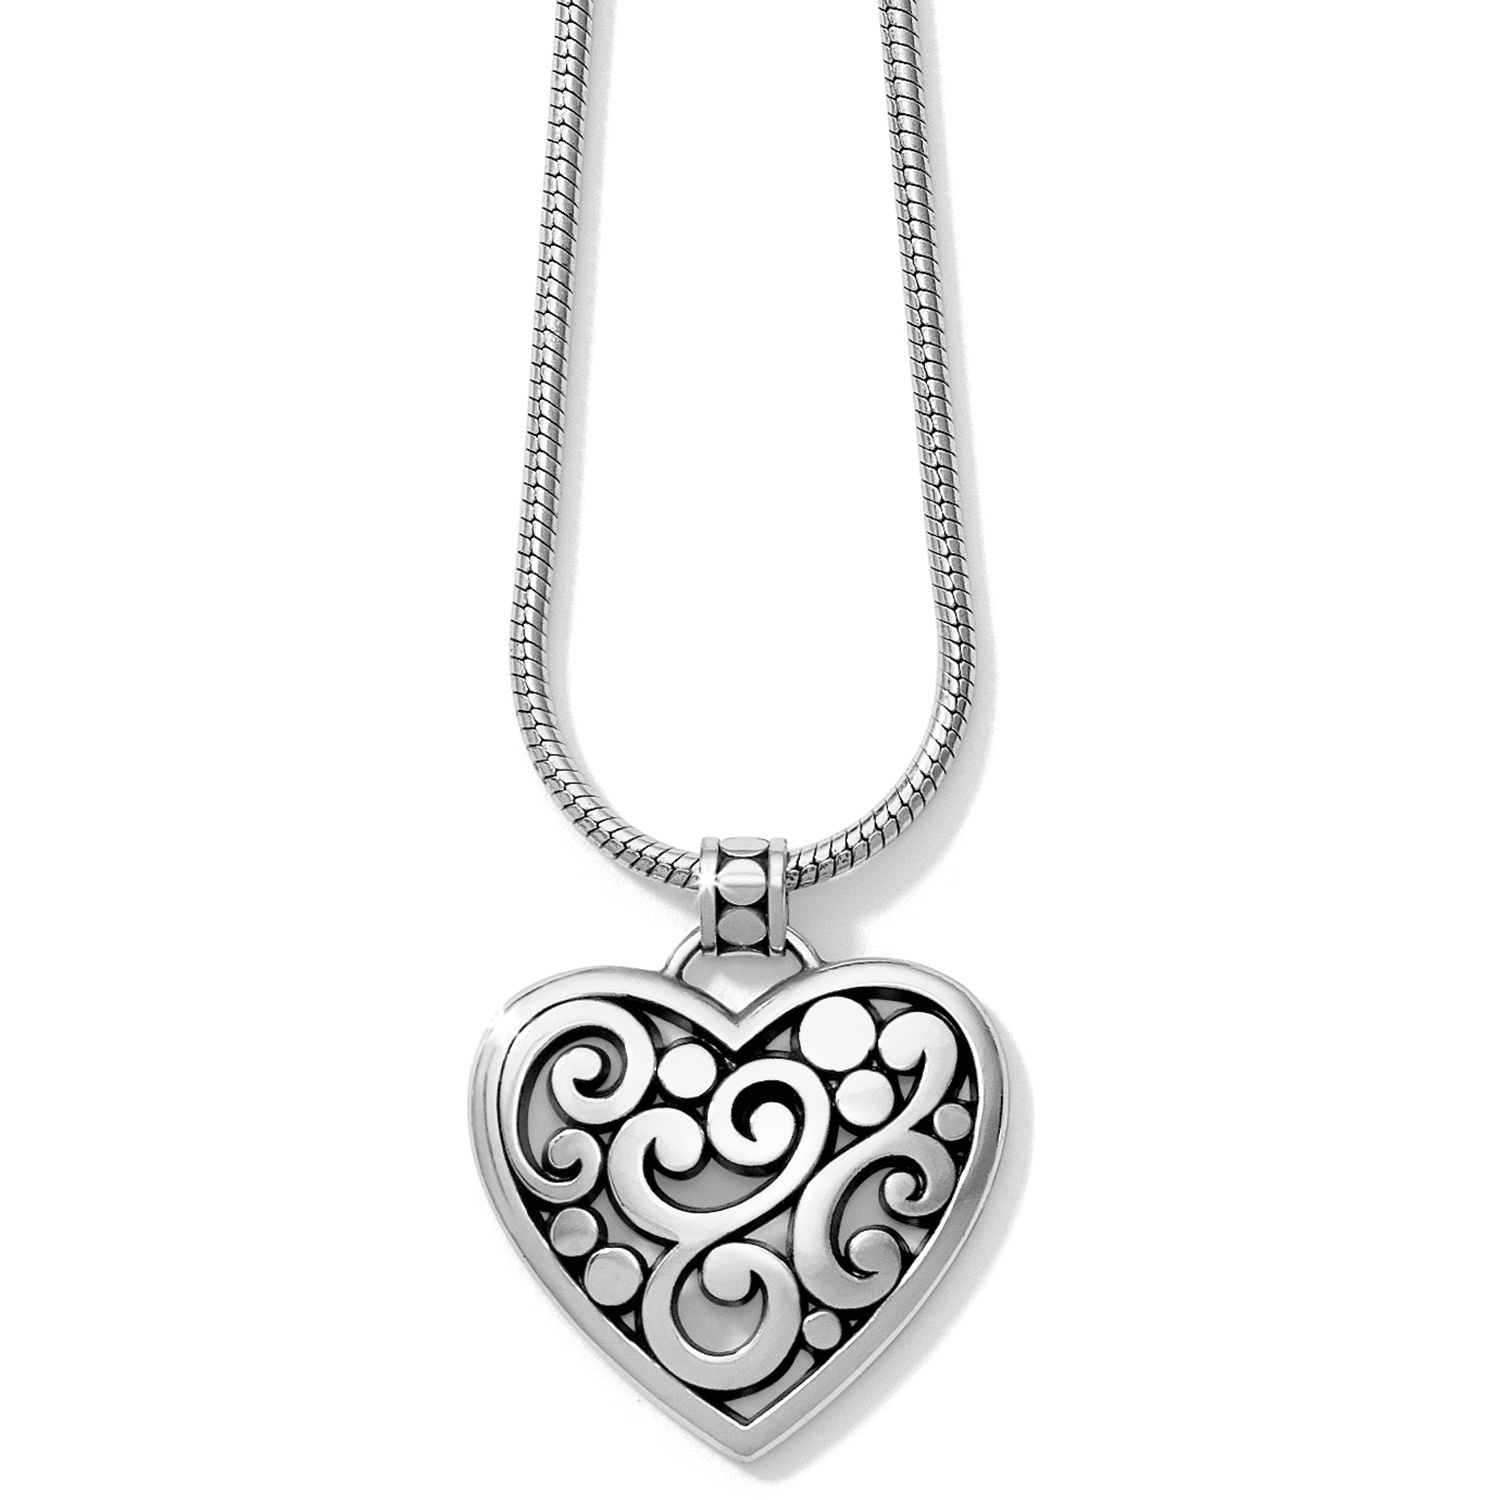 jewellery jewelry limoges necklace heart birthstone silver sterling name